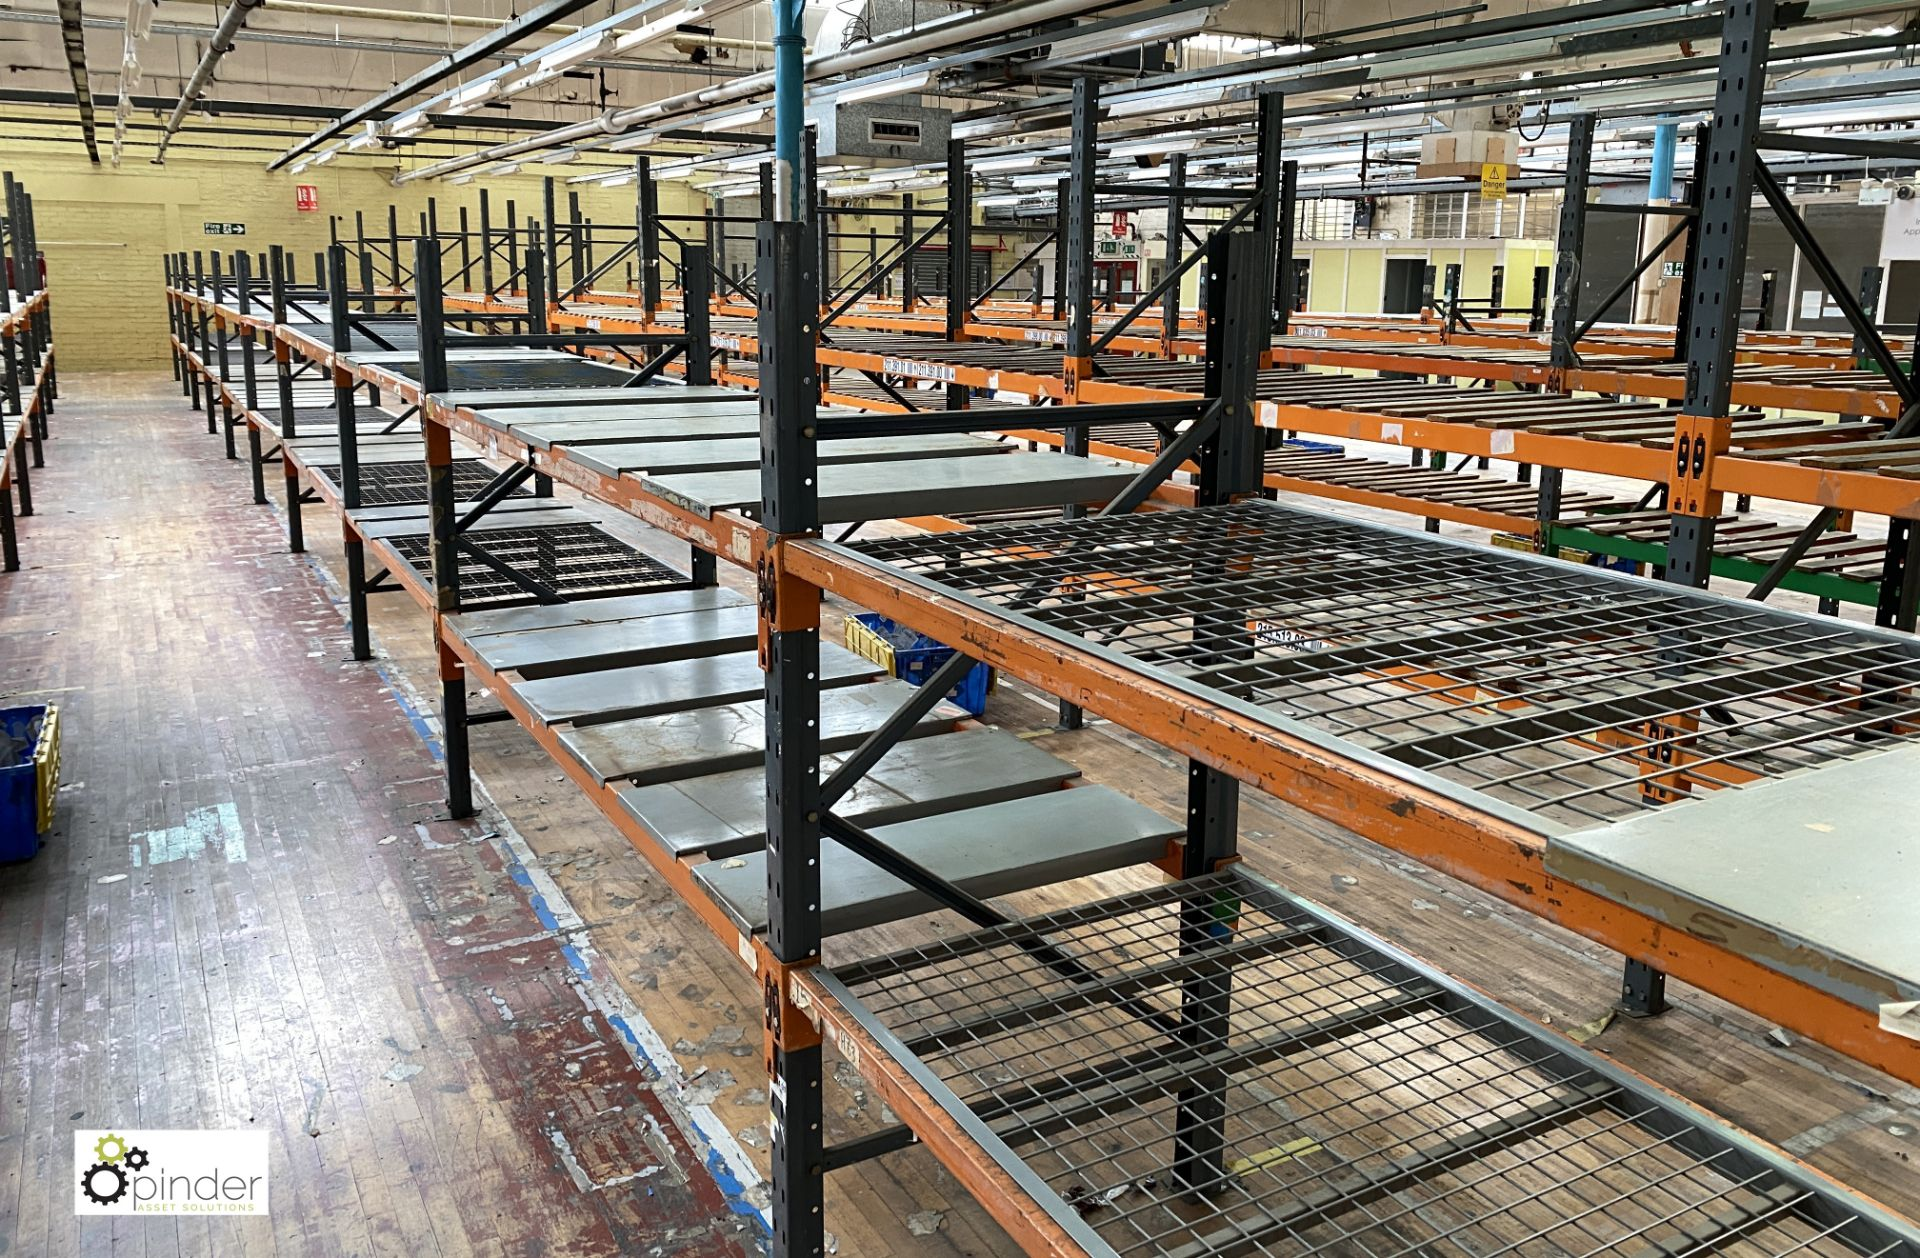 12 bays Dexion Speedlock boltless Racking, comprising 12 uprights 1835mm x 910mm, 1 upright 2440mm x - Image 3 of 4